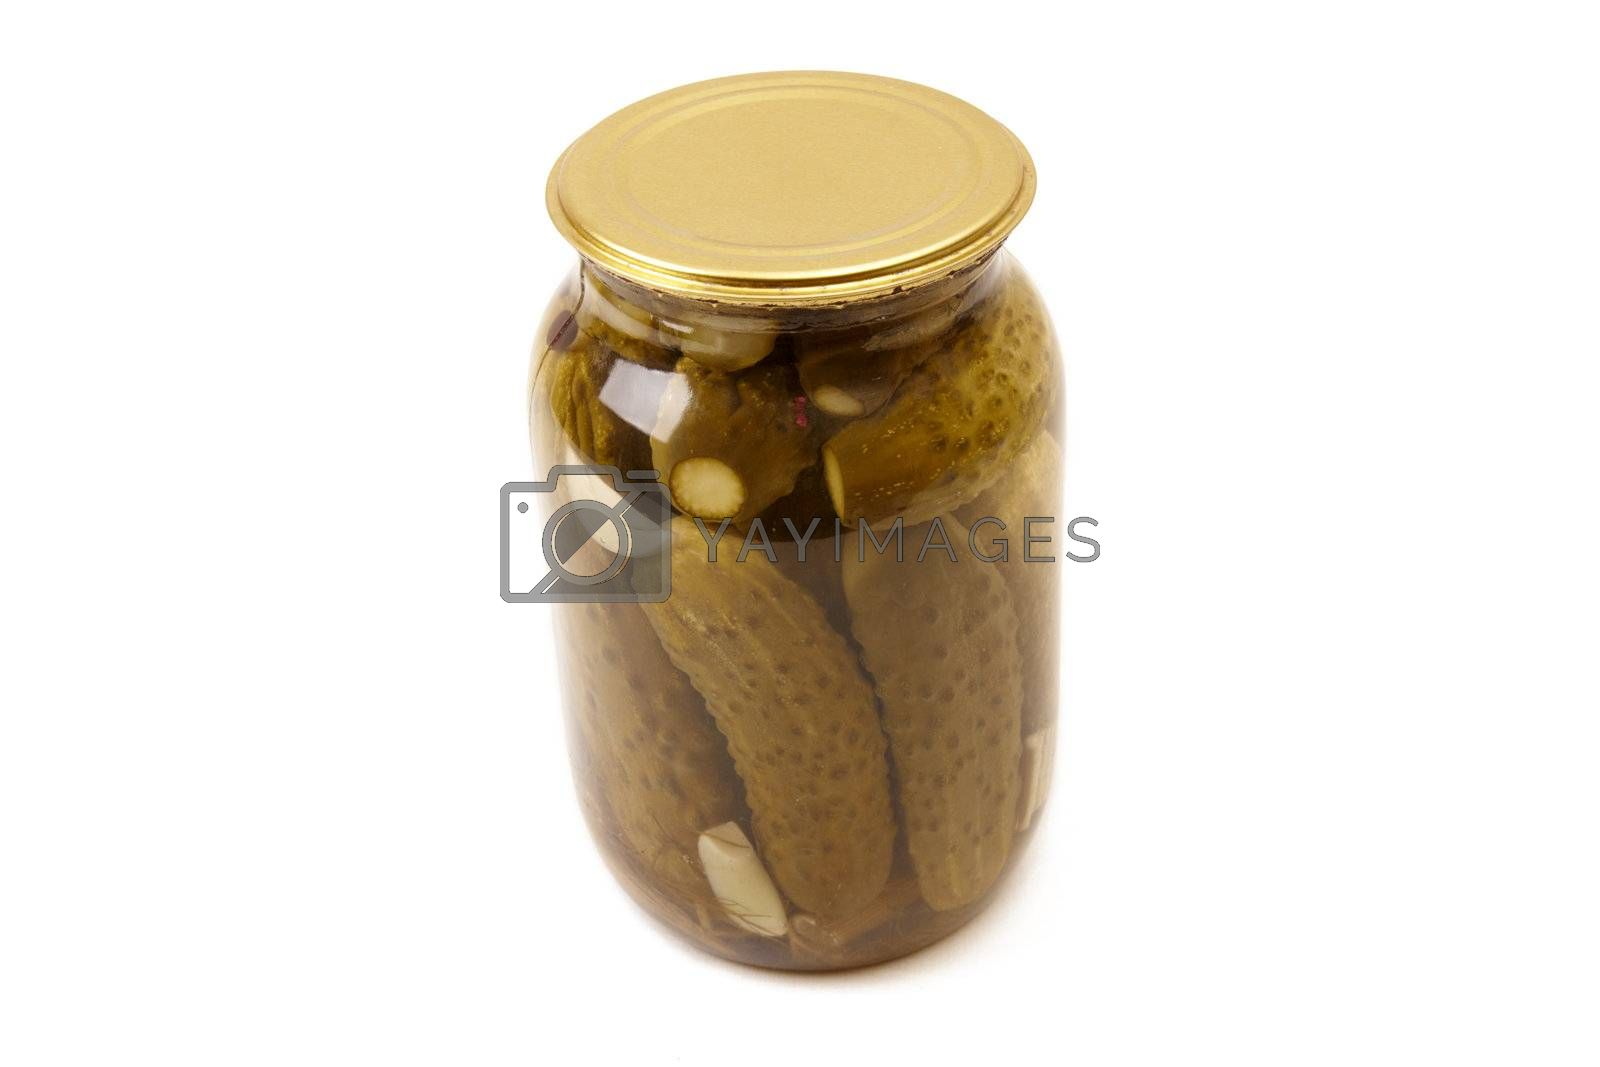 Tree clear glass jar of green pickled cucumbers. Isolated image